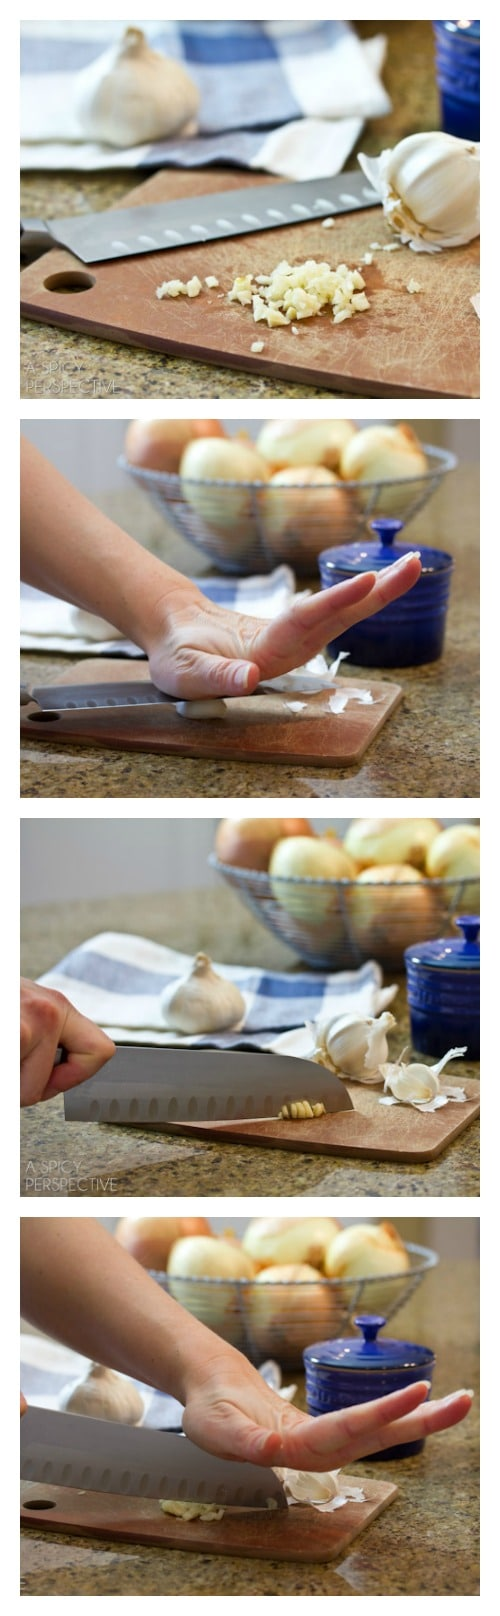 How to Peel and Mince Garlic on ASpicyPerspective.com #howto #garlic